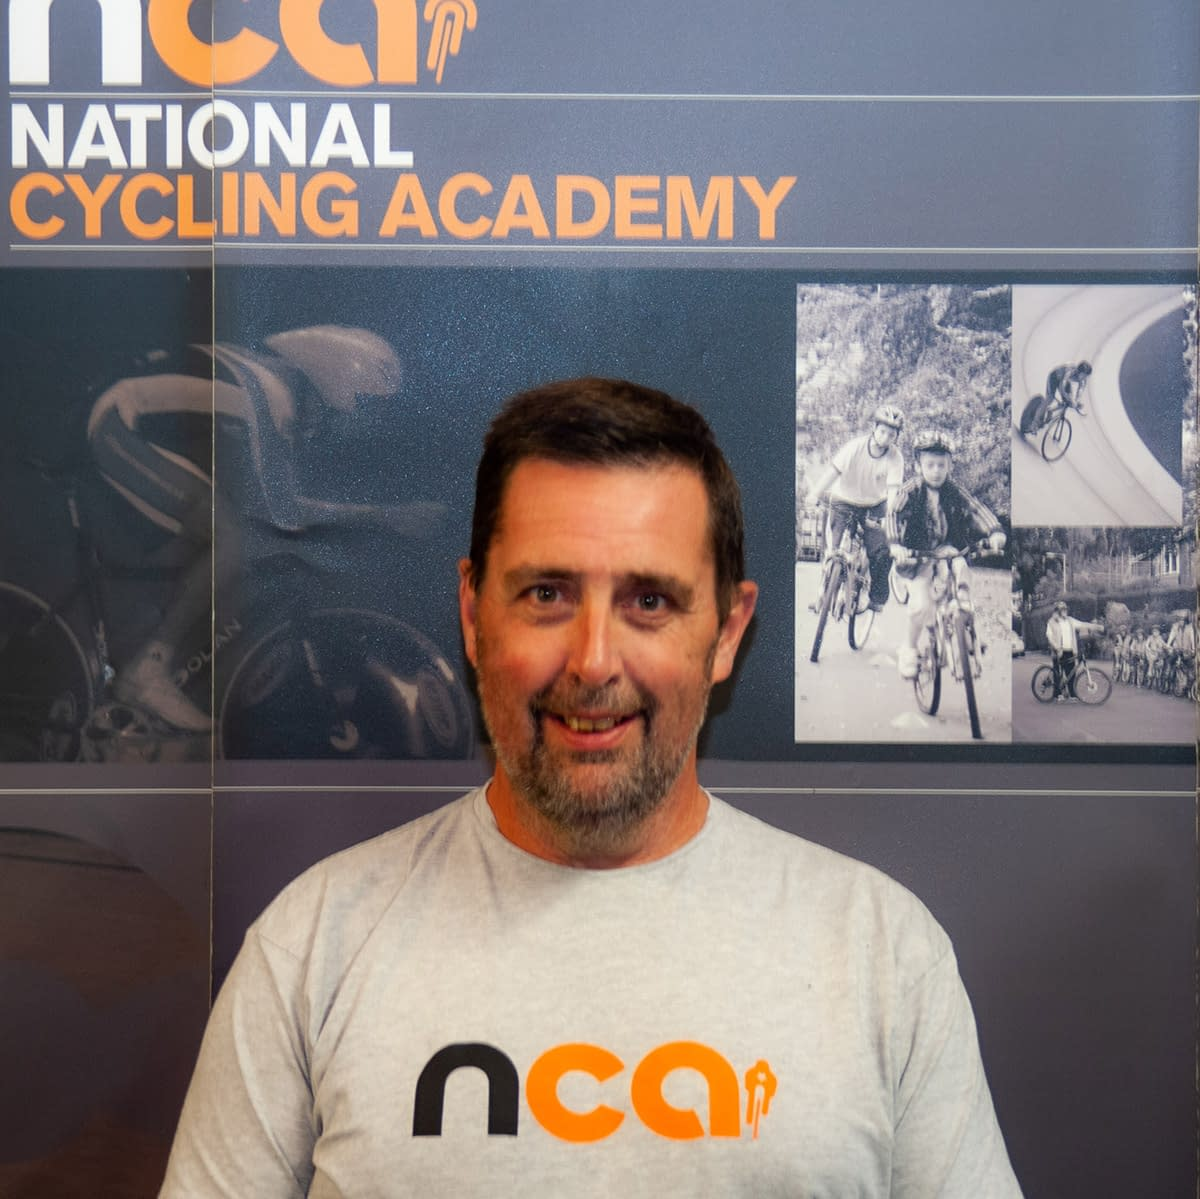 About NCA - Dave Fish